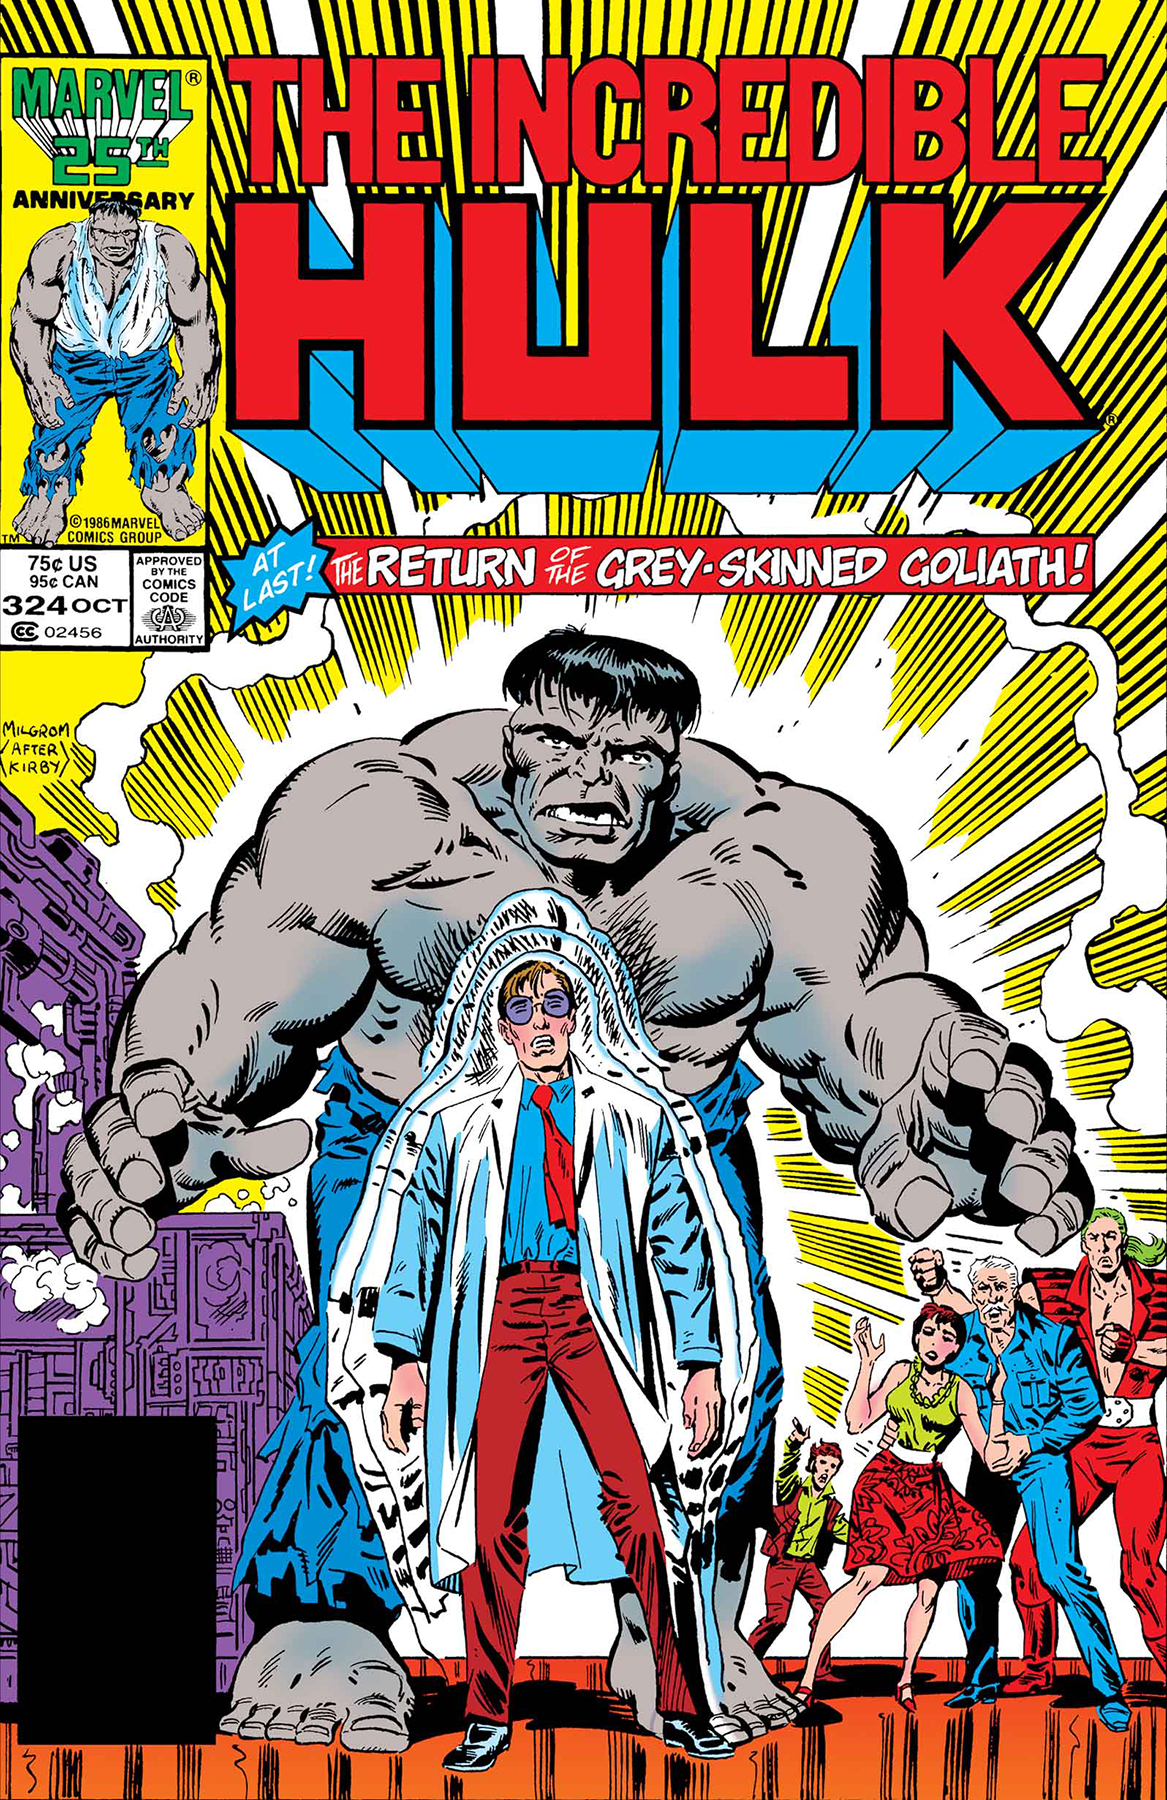 TRUE BELIEVERS HULK GRAY HULK RETURNS #1